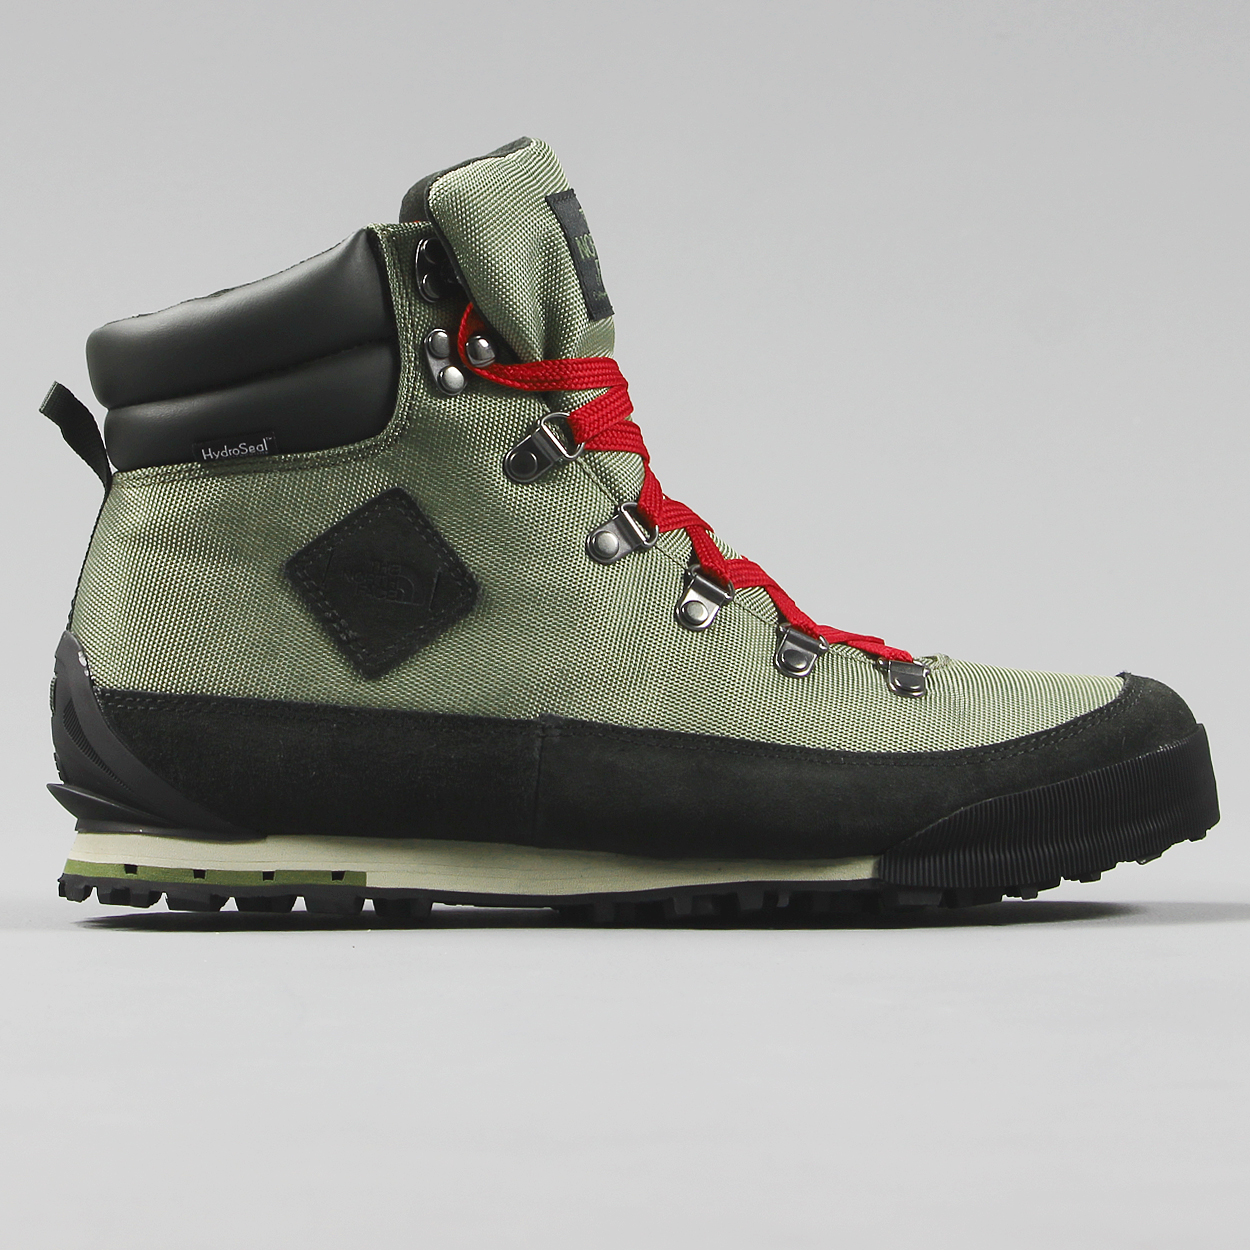 eb7b74224b4 North Face Mens Back To Berkeley Outdoor Walking Hiking Boots £77.00